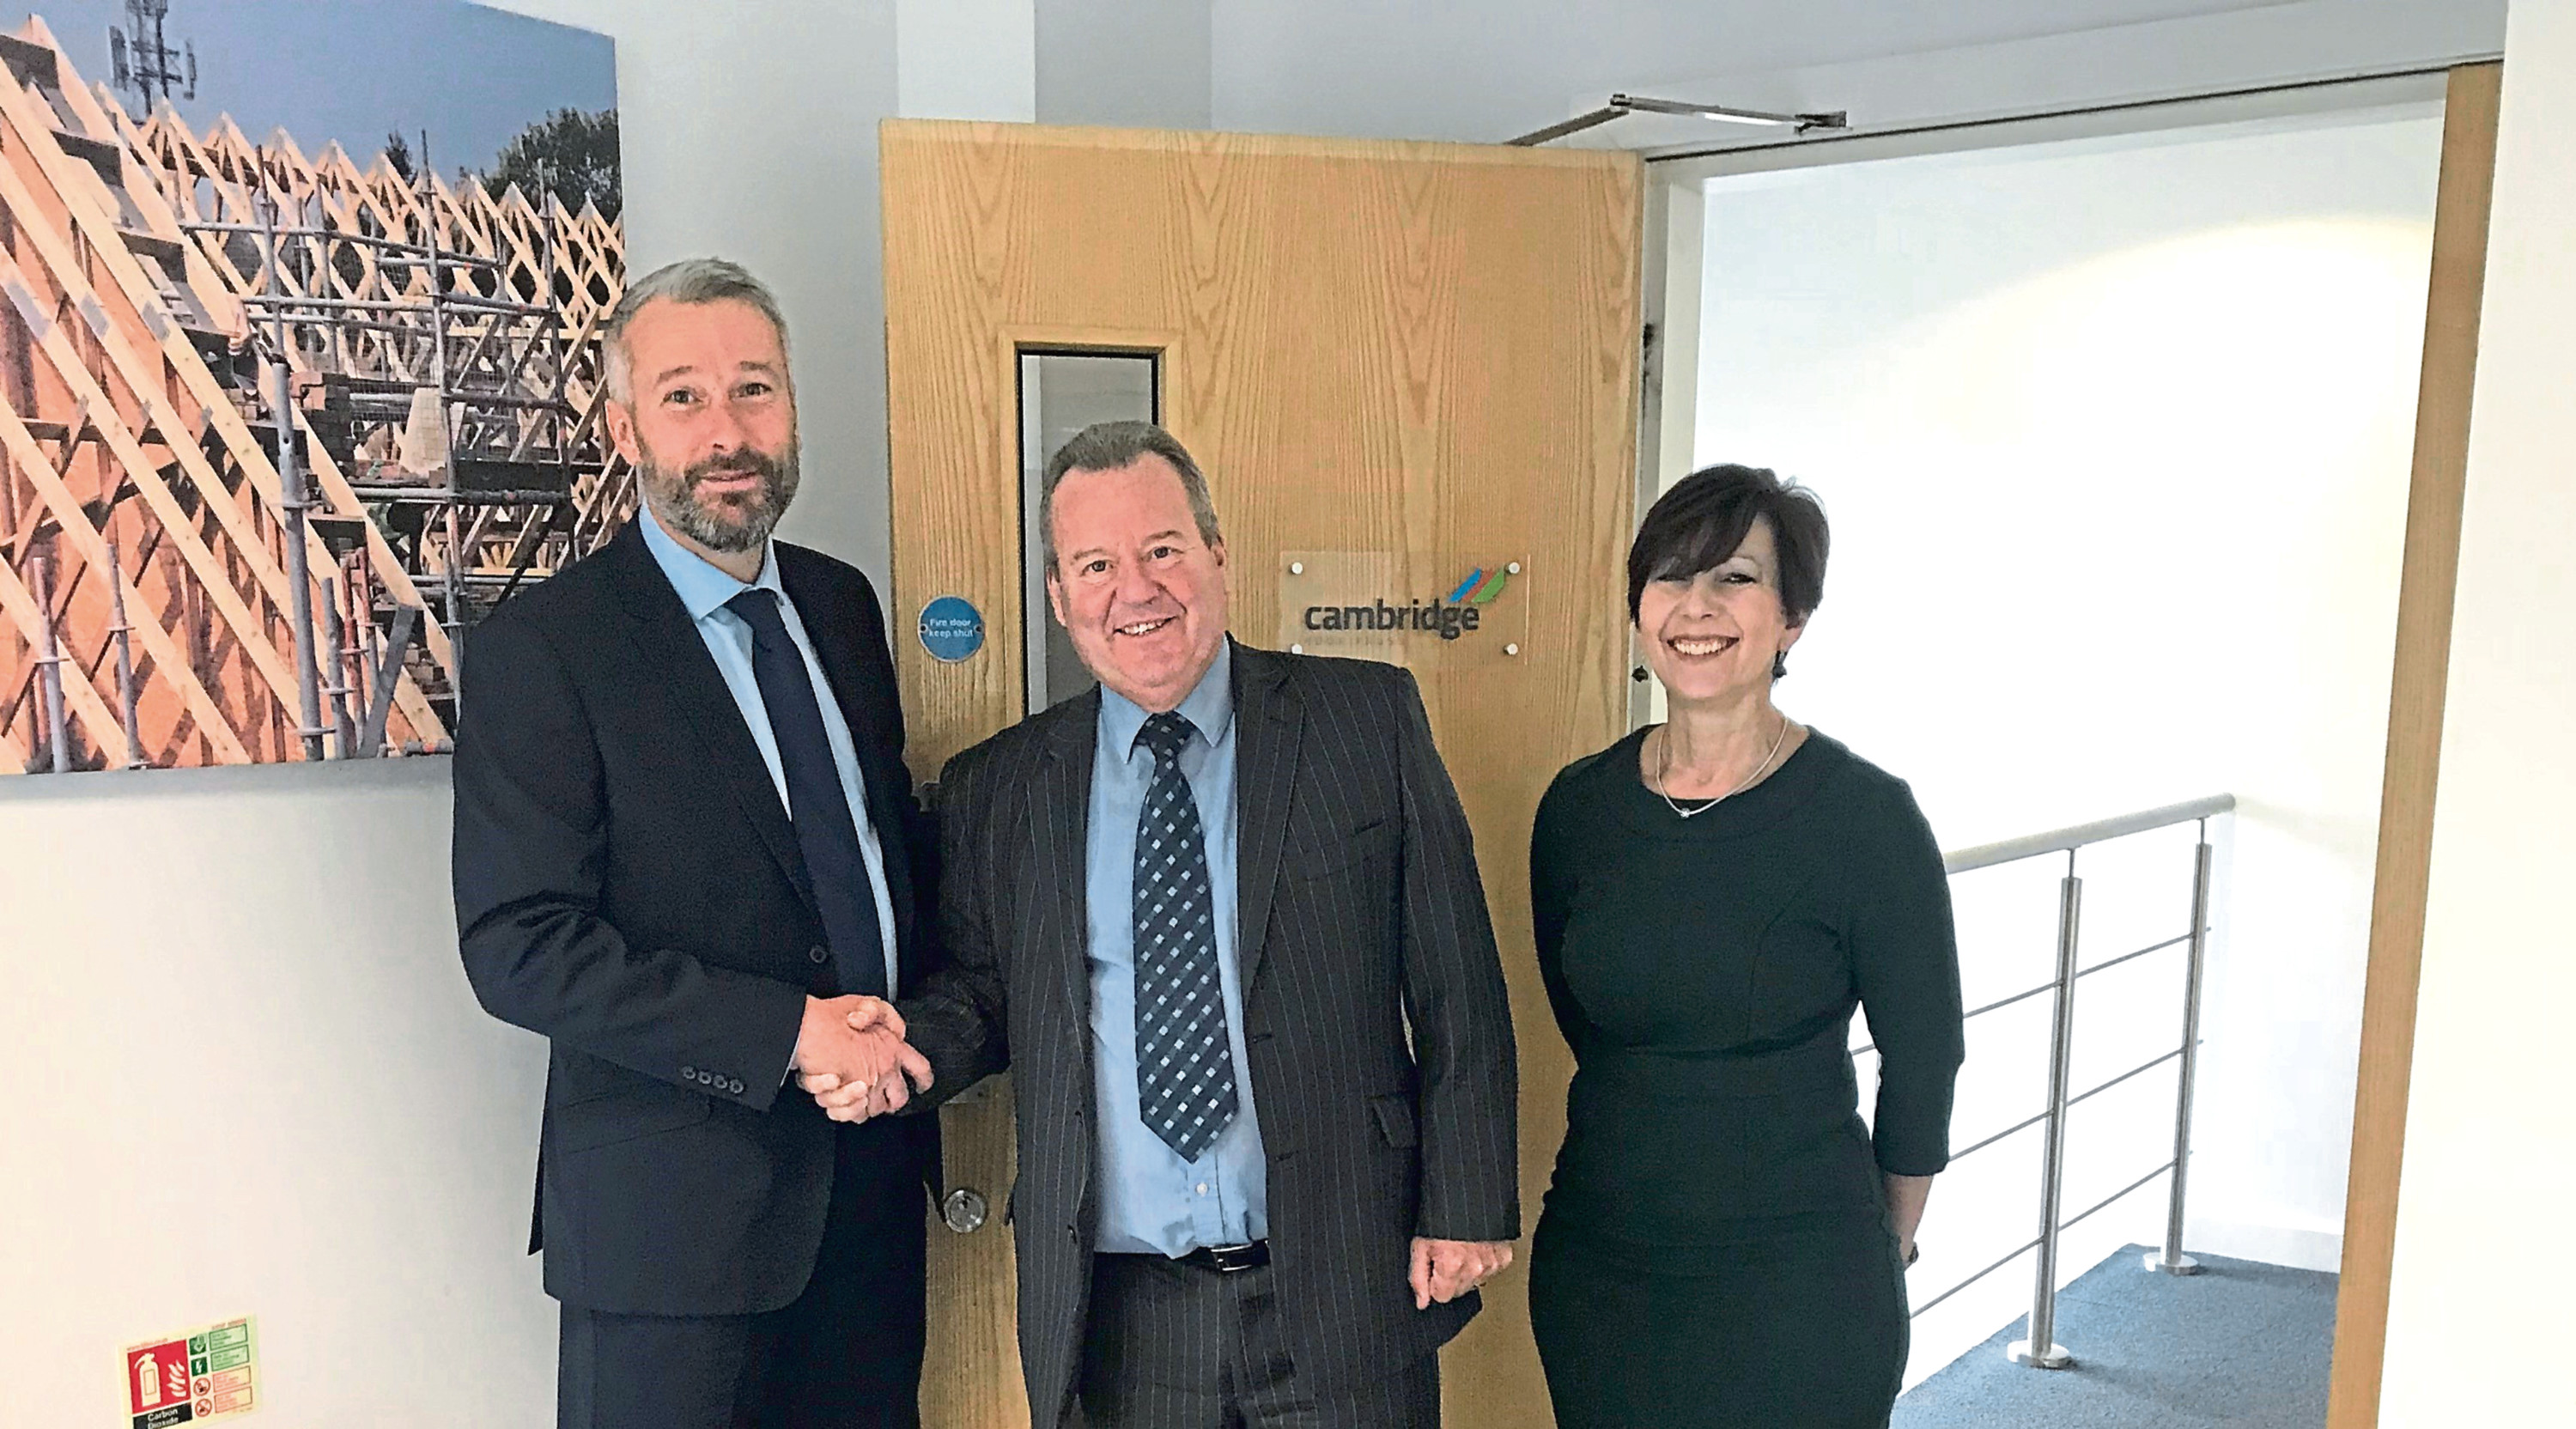 Donaldson Timber Engineering managing director Jonathan Fellingham with Cambridge Roof Truss managing director Jack McMinn and director Sue Mills.